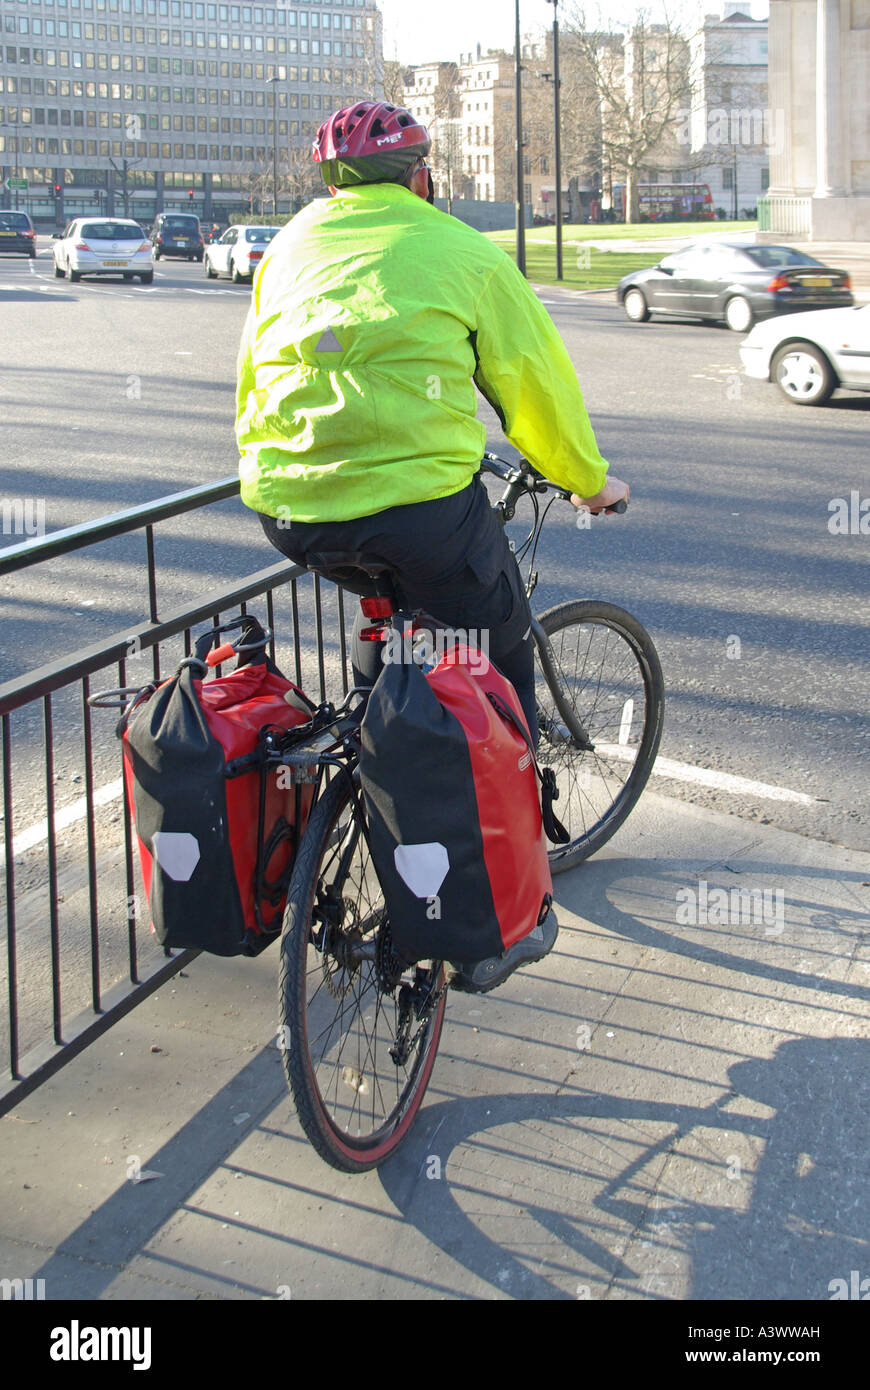 Cyclist wearing the gear in designated cycle lane at traffic lights waiting to cross Hyde Park Corner - Stock Image